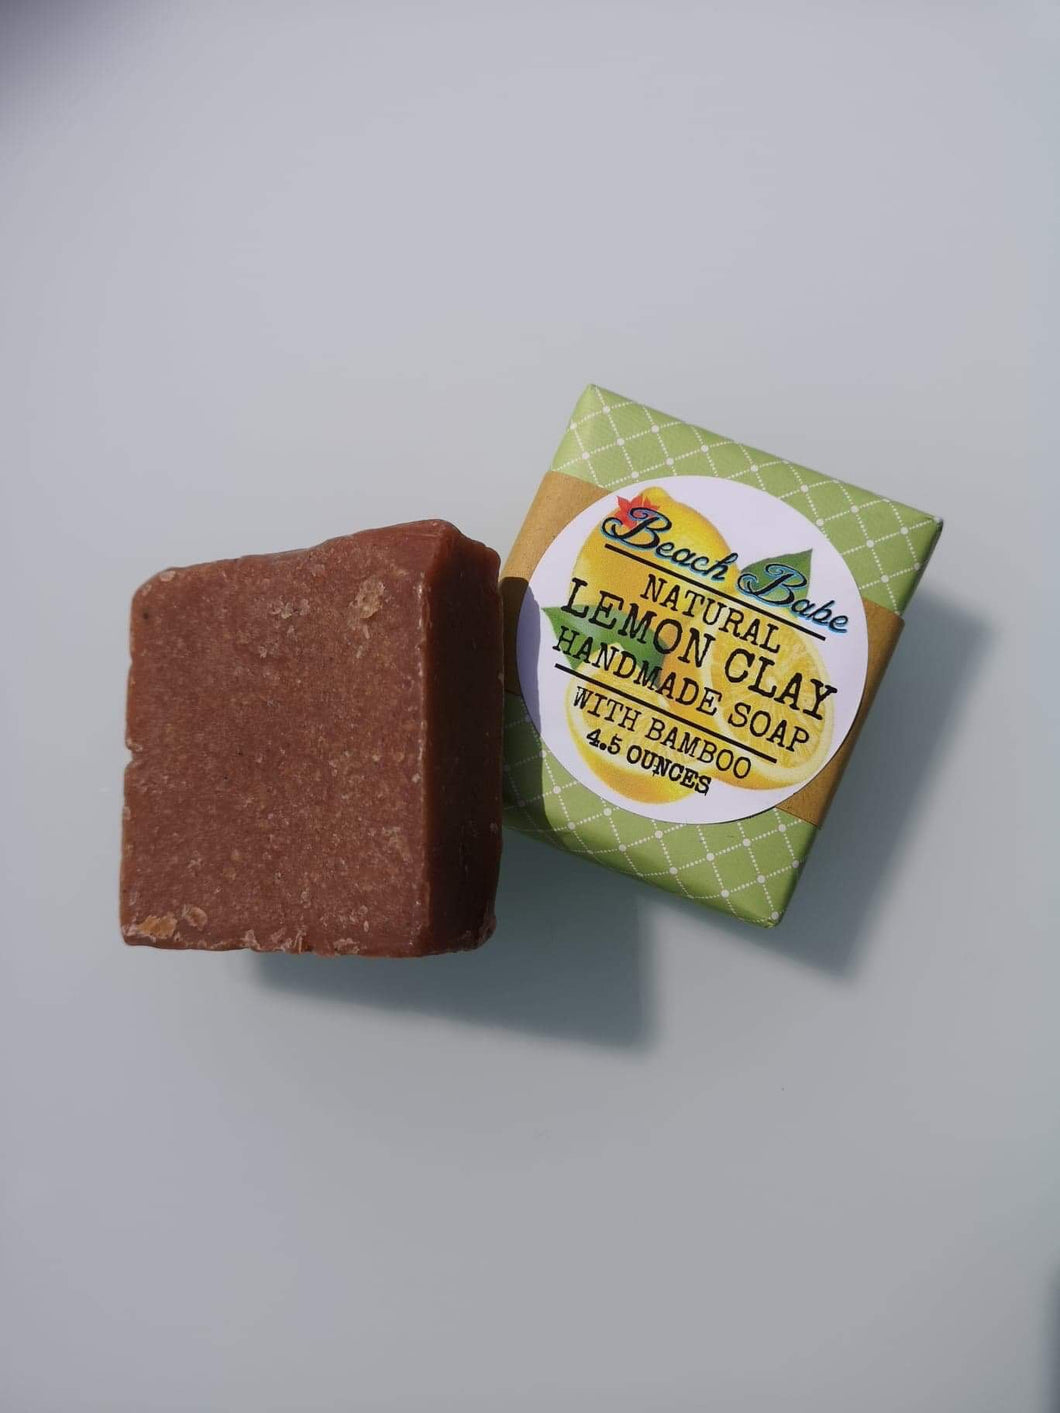 Lemon Clay bar